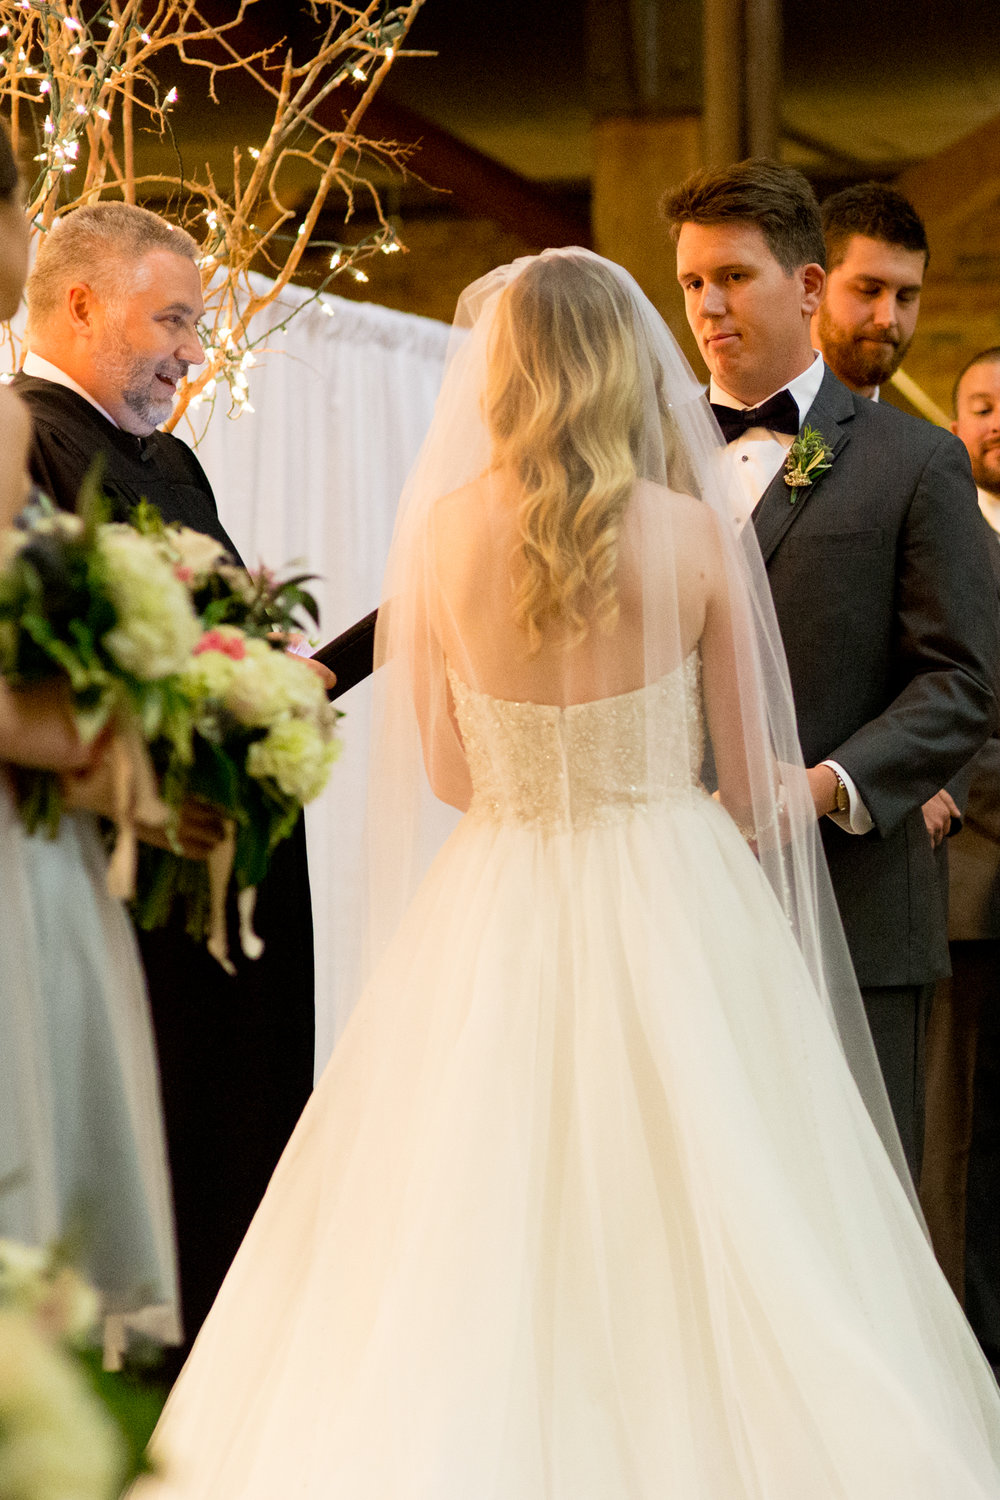 RussellWedding_Ceremony-41.jpg